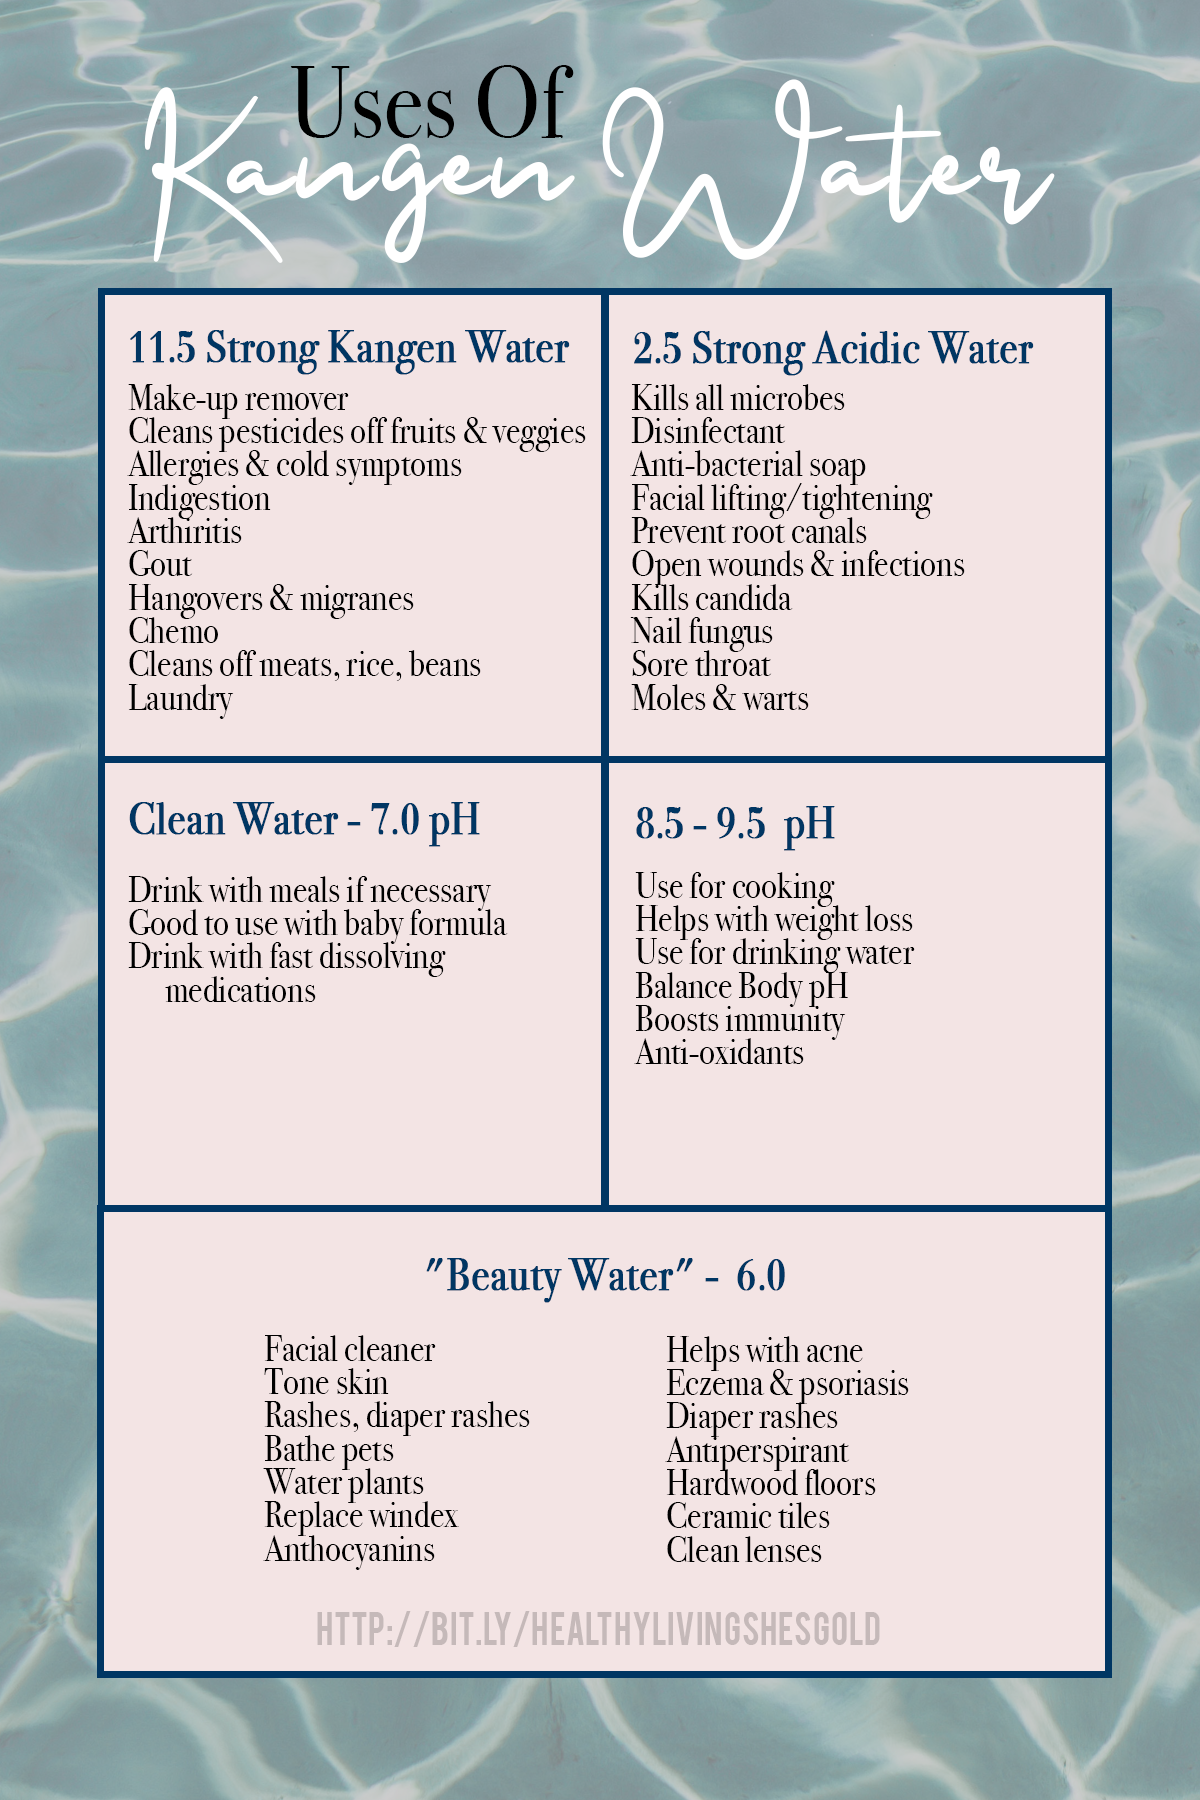 Kangen Water Is Life Changing And Used For So Much More Than Just Drinking Shesgoldco Healthyliving With Images Kangen Water Kangen Water Benefits Kangen Water Machine